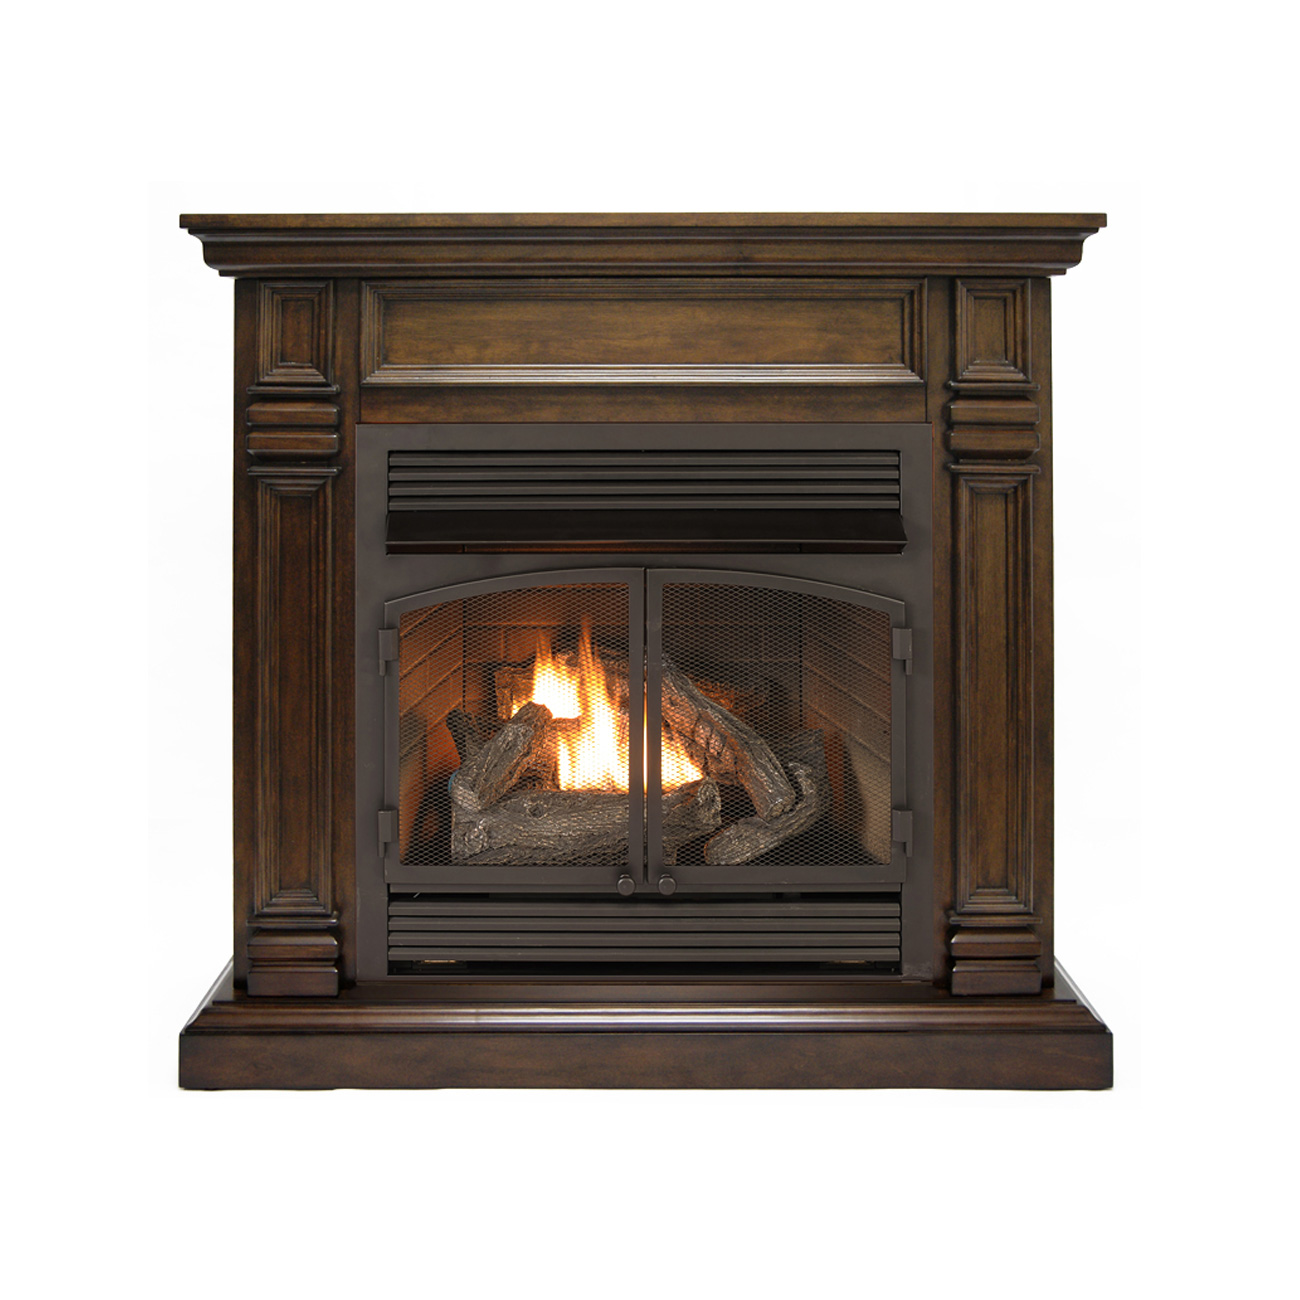 ventless fireplace insert model fbd400rt series procom heating